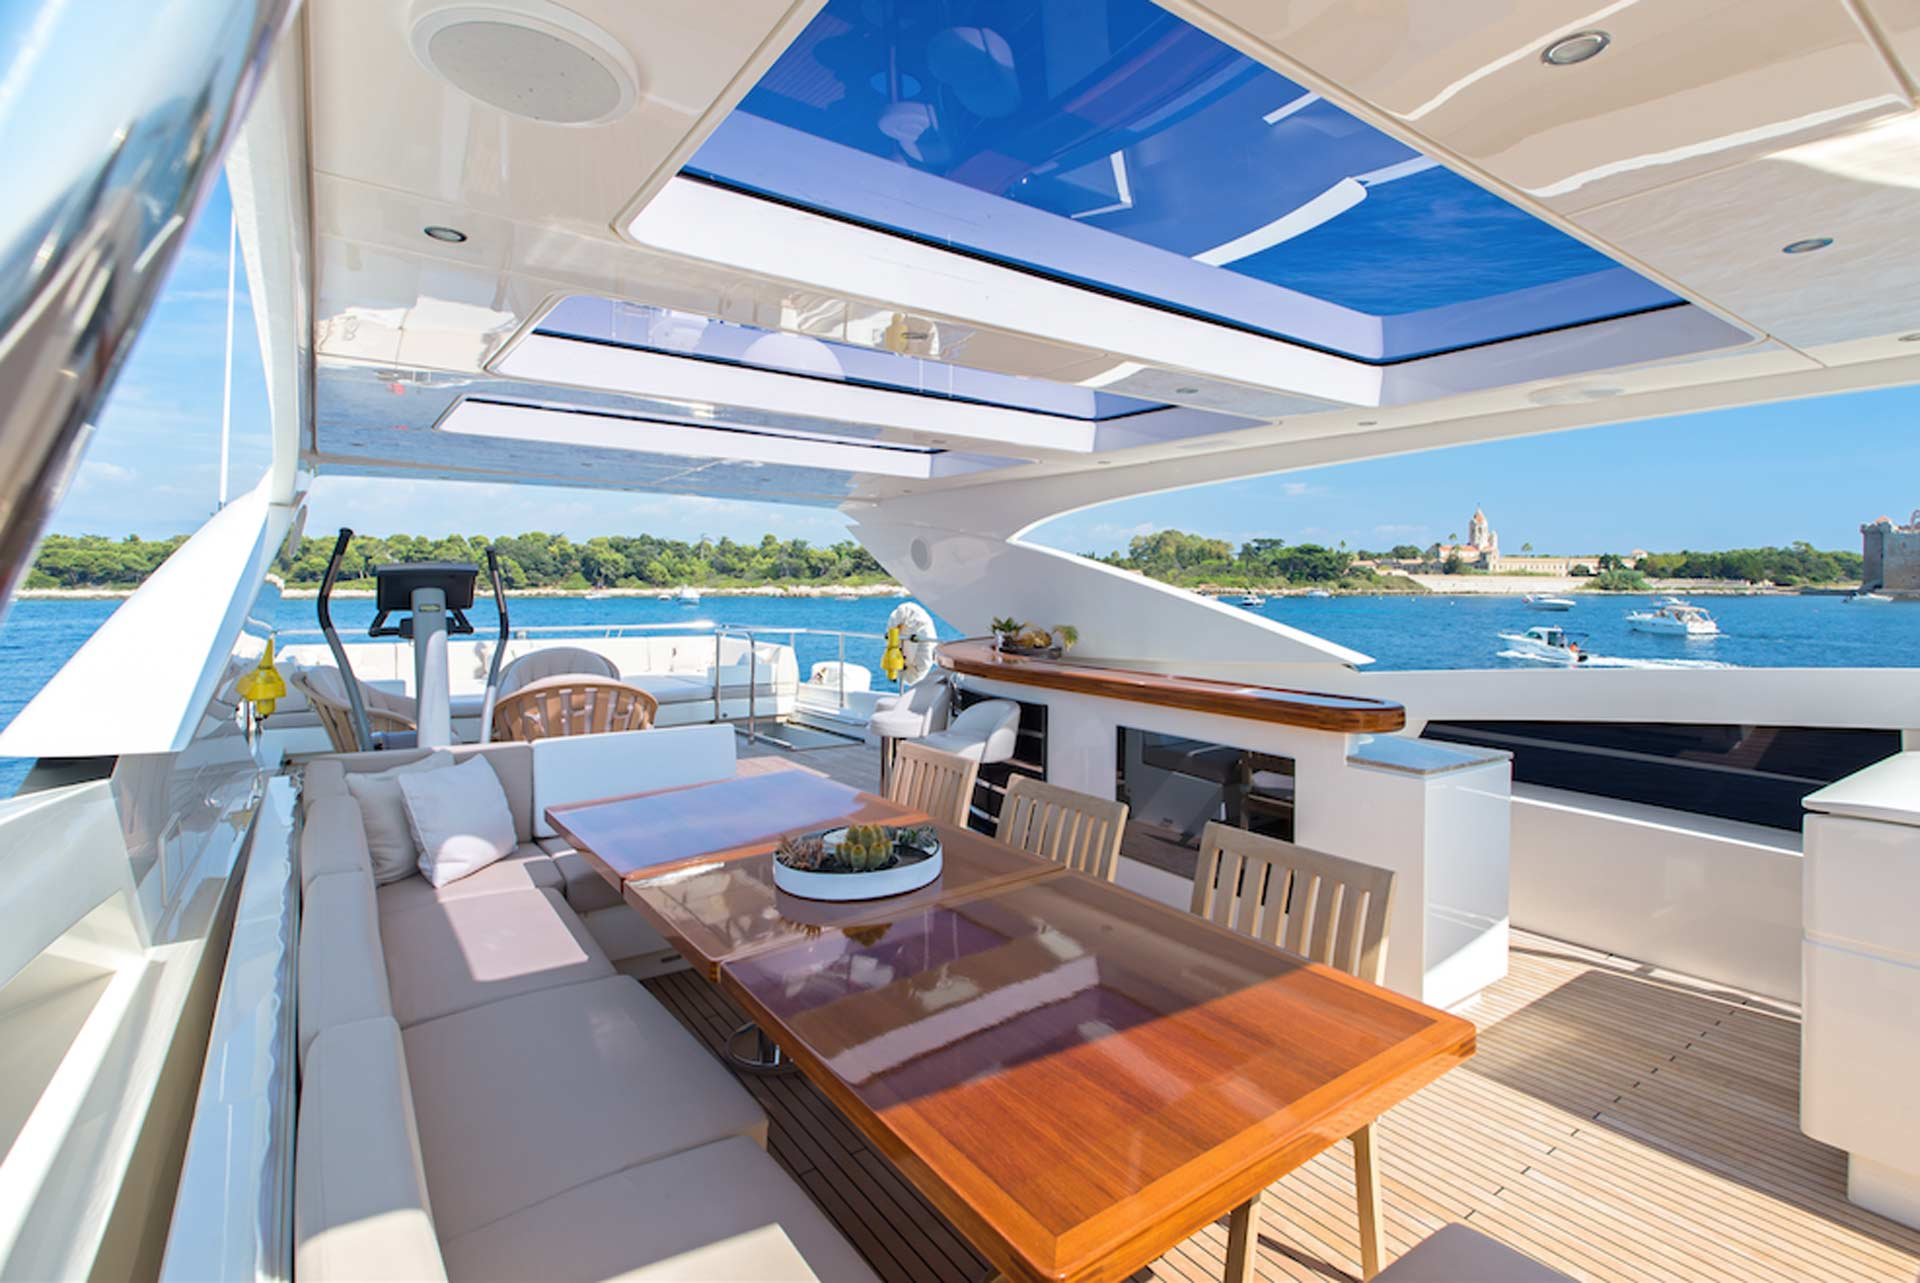 Take a breath of Yachting air